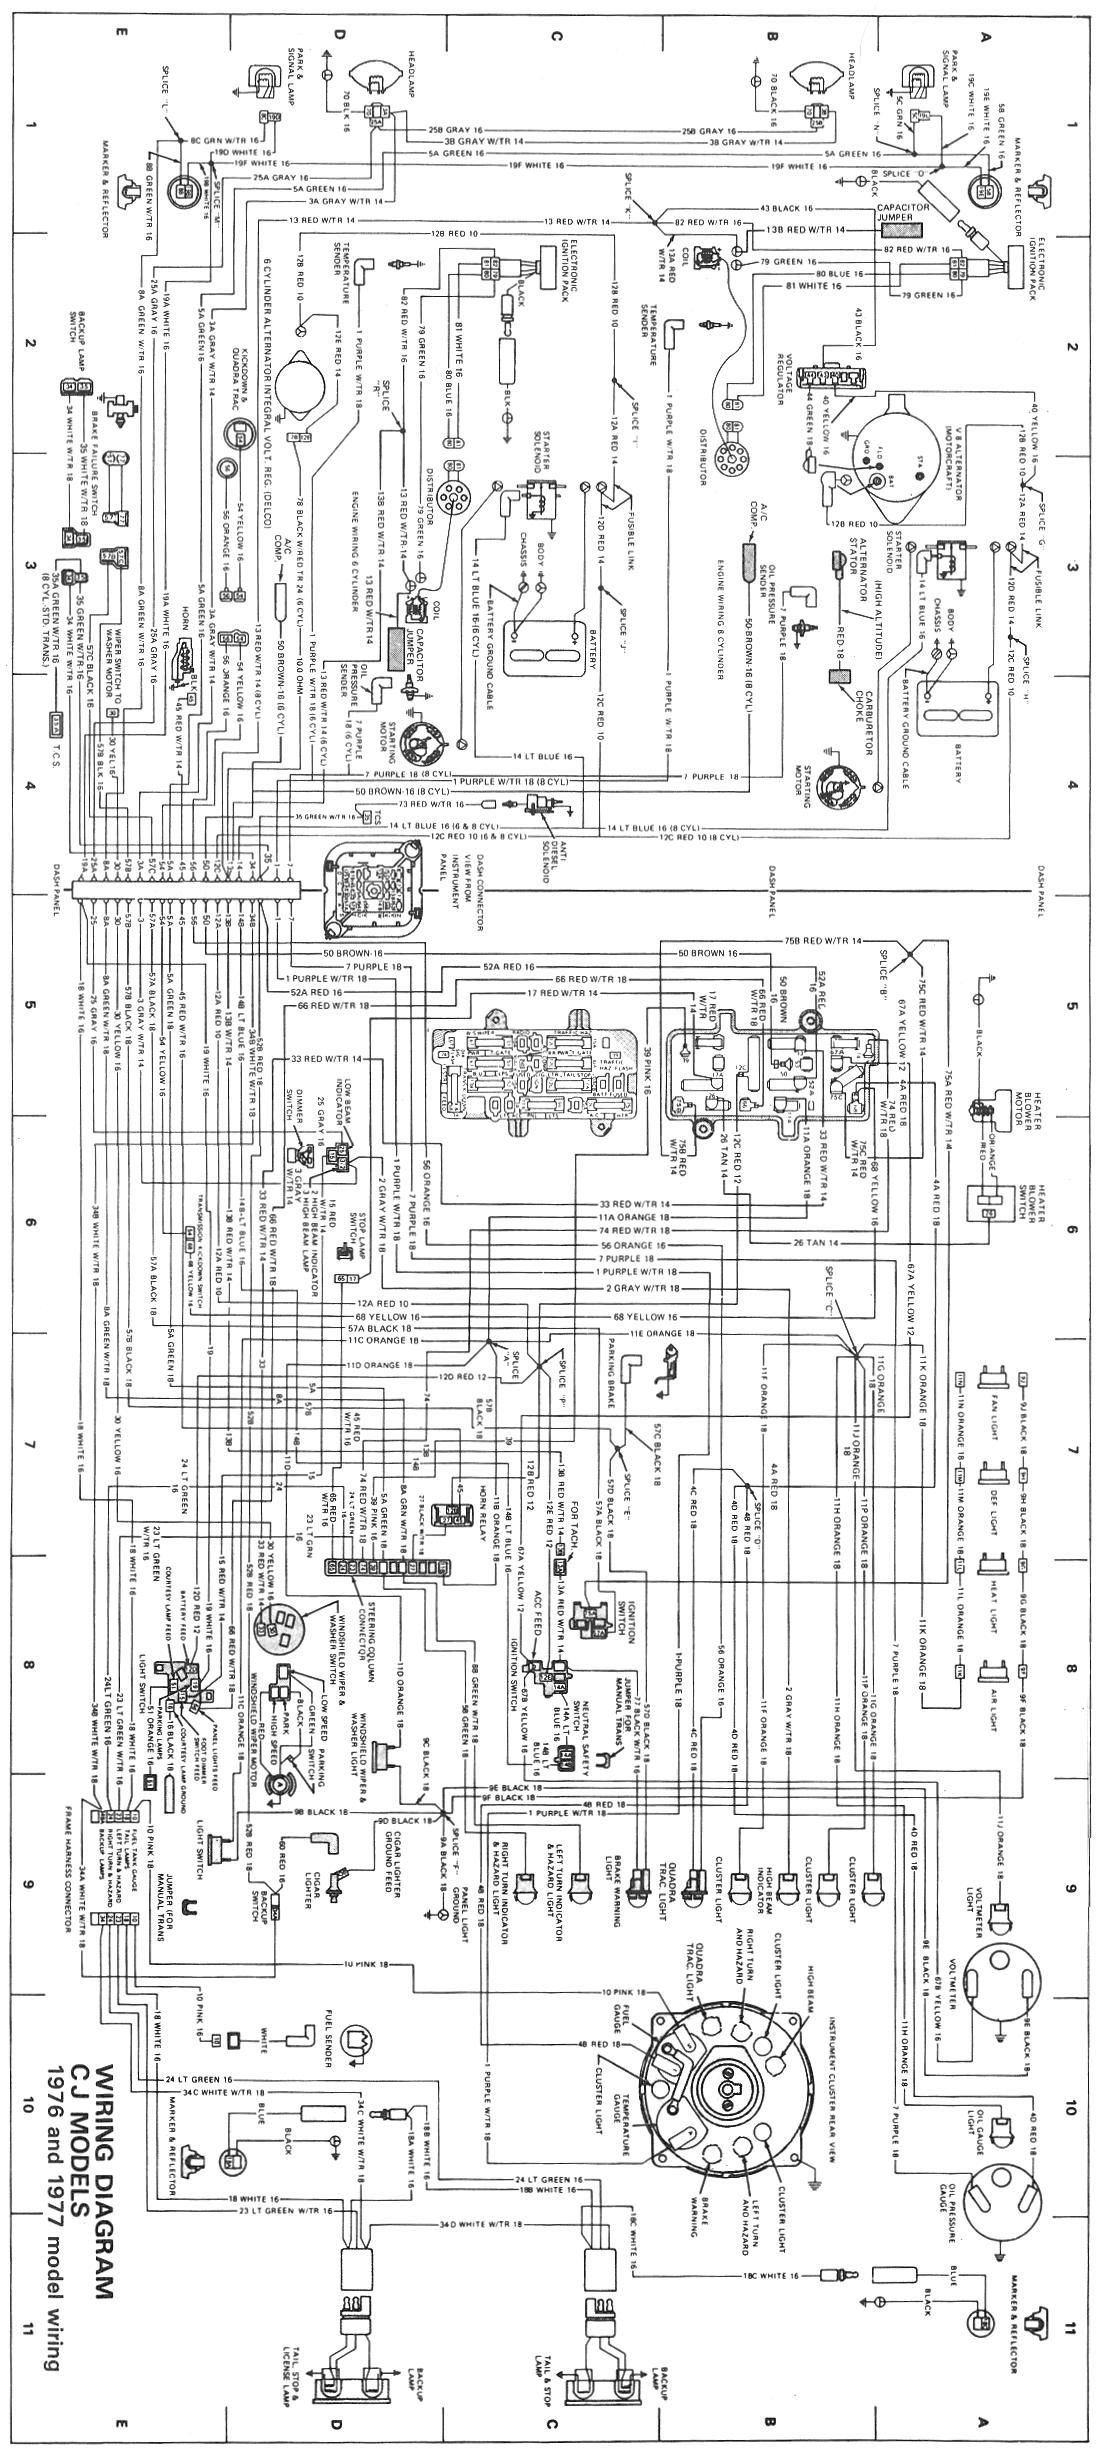 Cj7 Headlight Switch Wiring Diagram